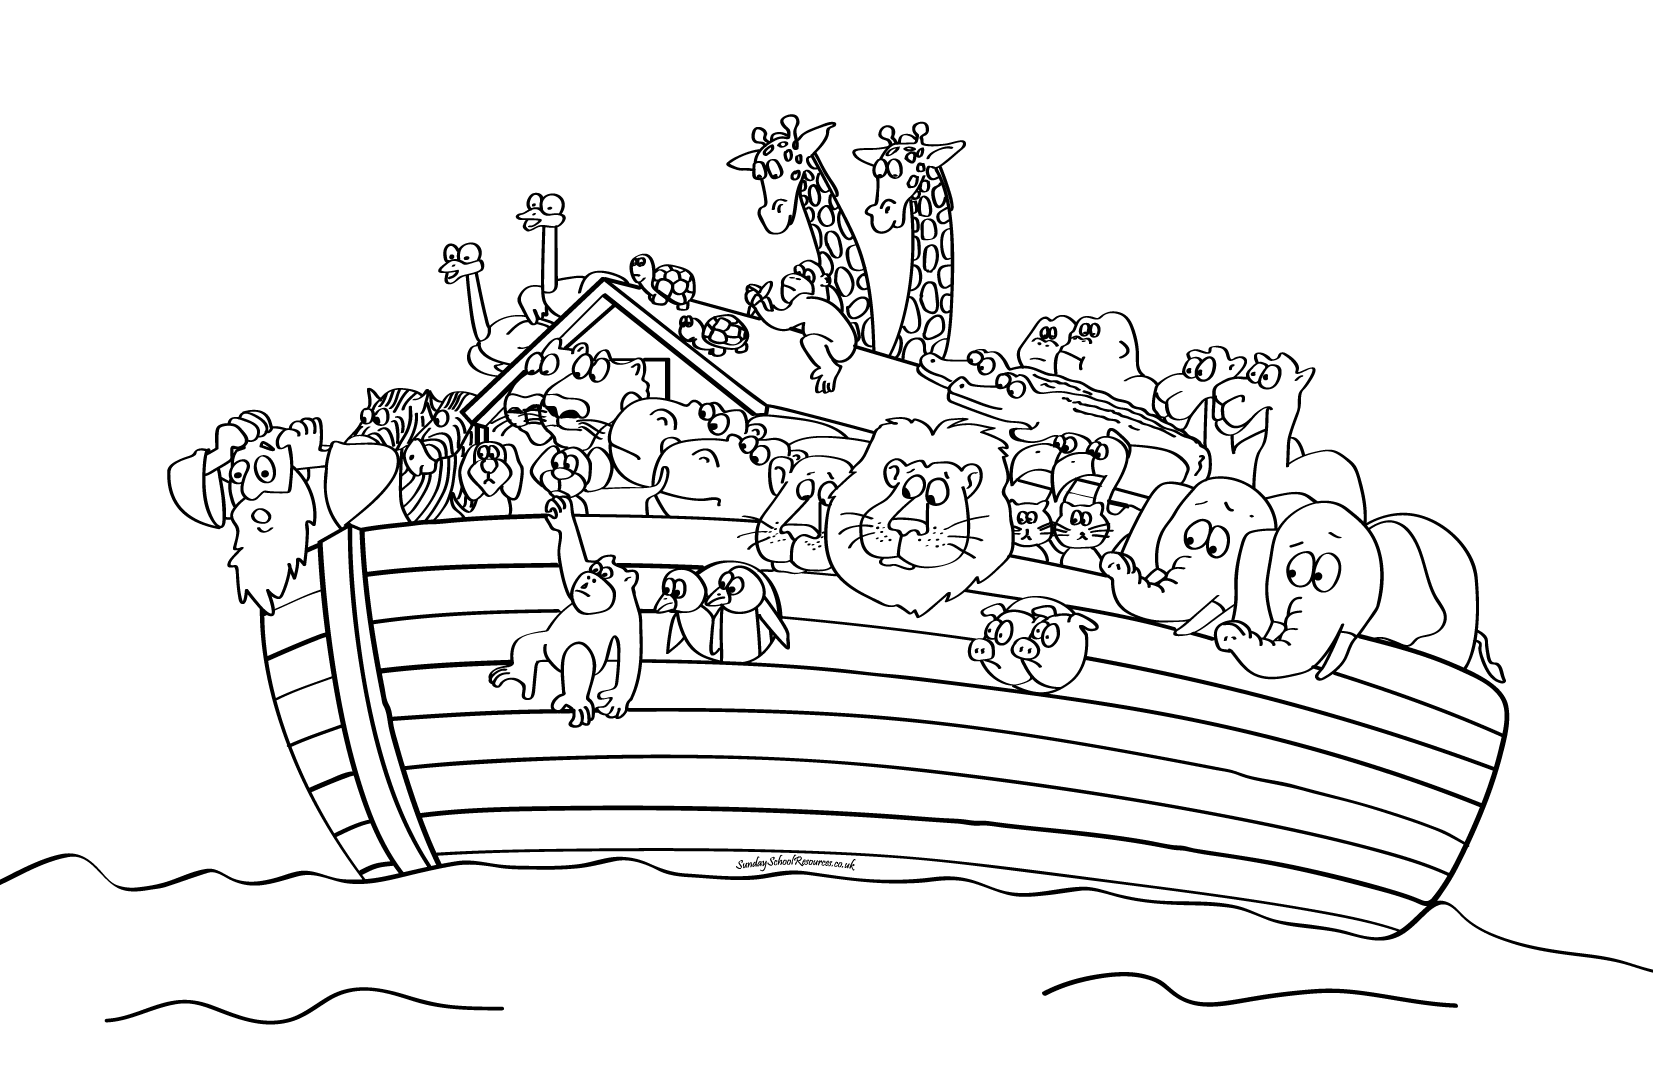 noah and the ark coloring page noah39s ark animals two by two coloring page free coloring and the noah page ark